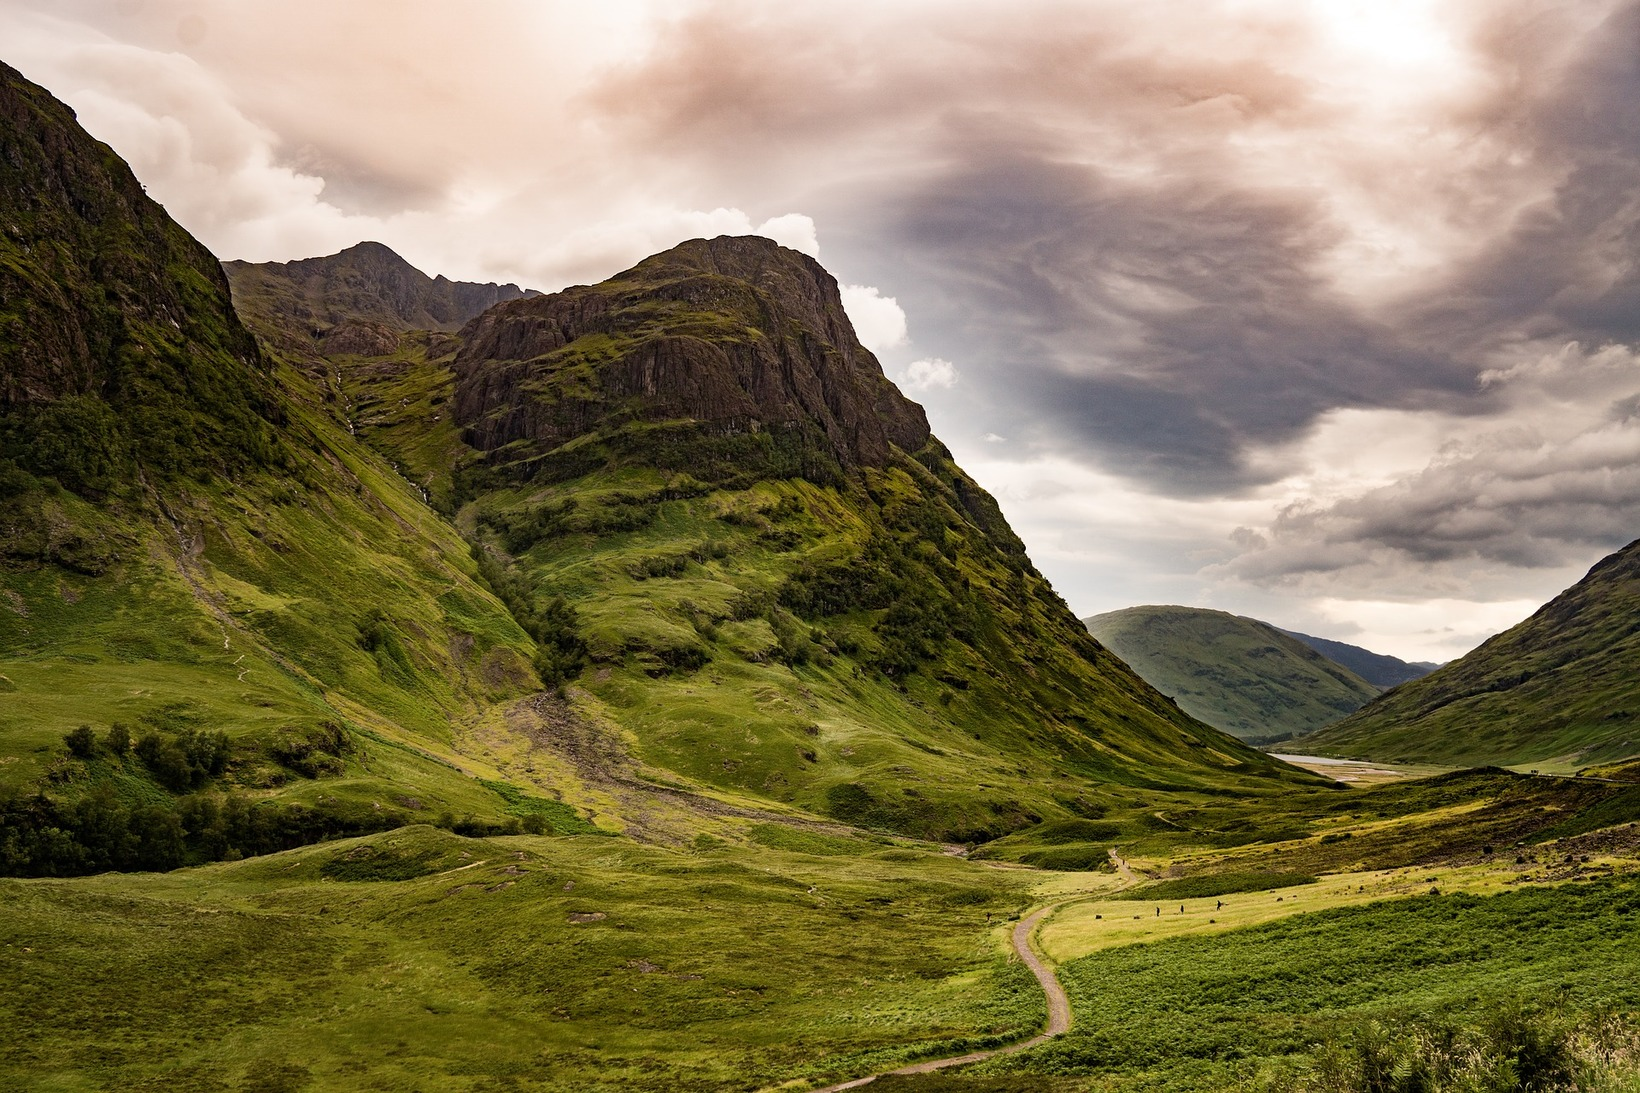 Explore the Highlands with a day or multi-day tour